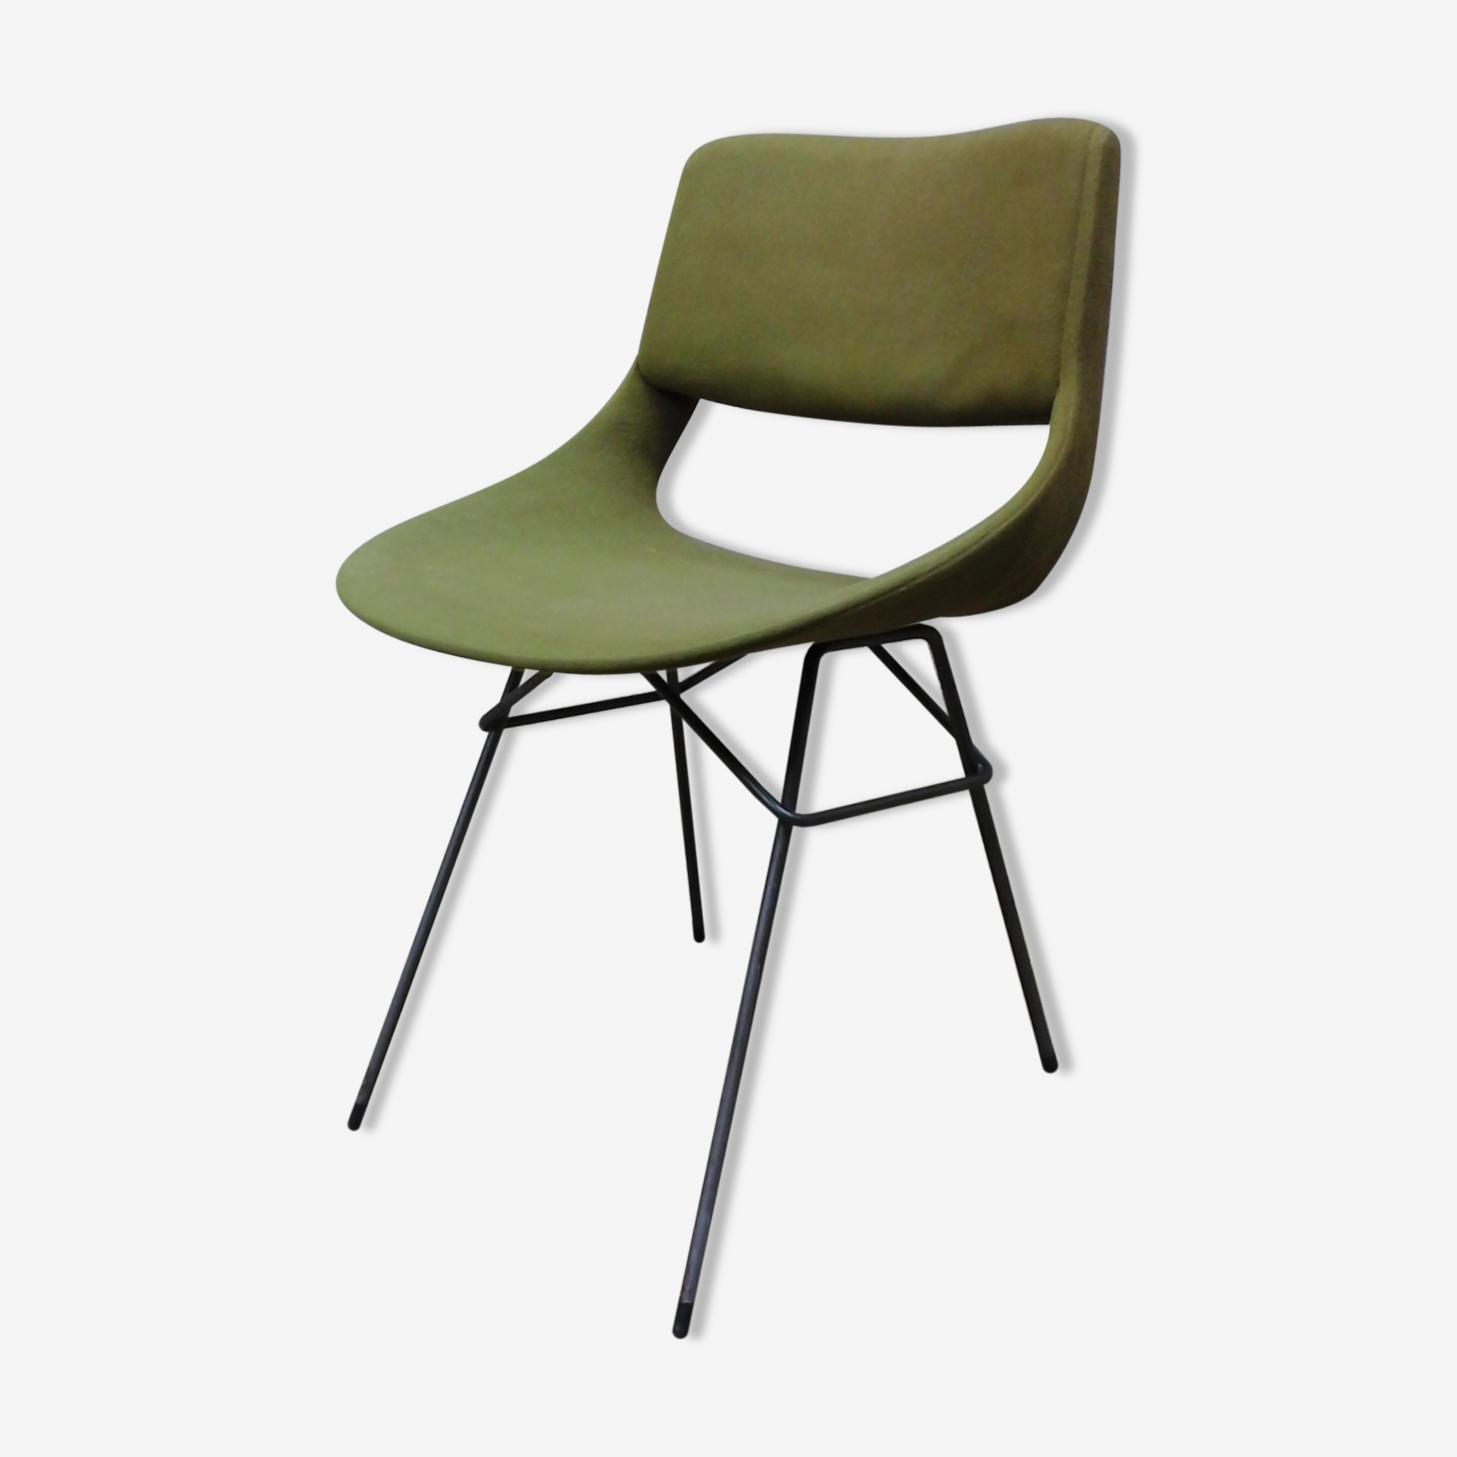 Chair Louis Paolozzi for Zol to wallpaper